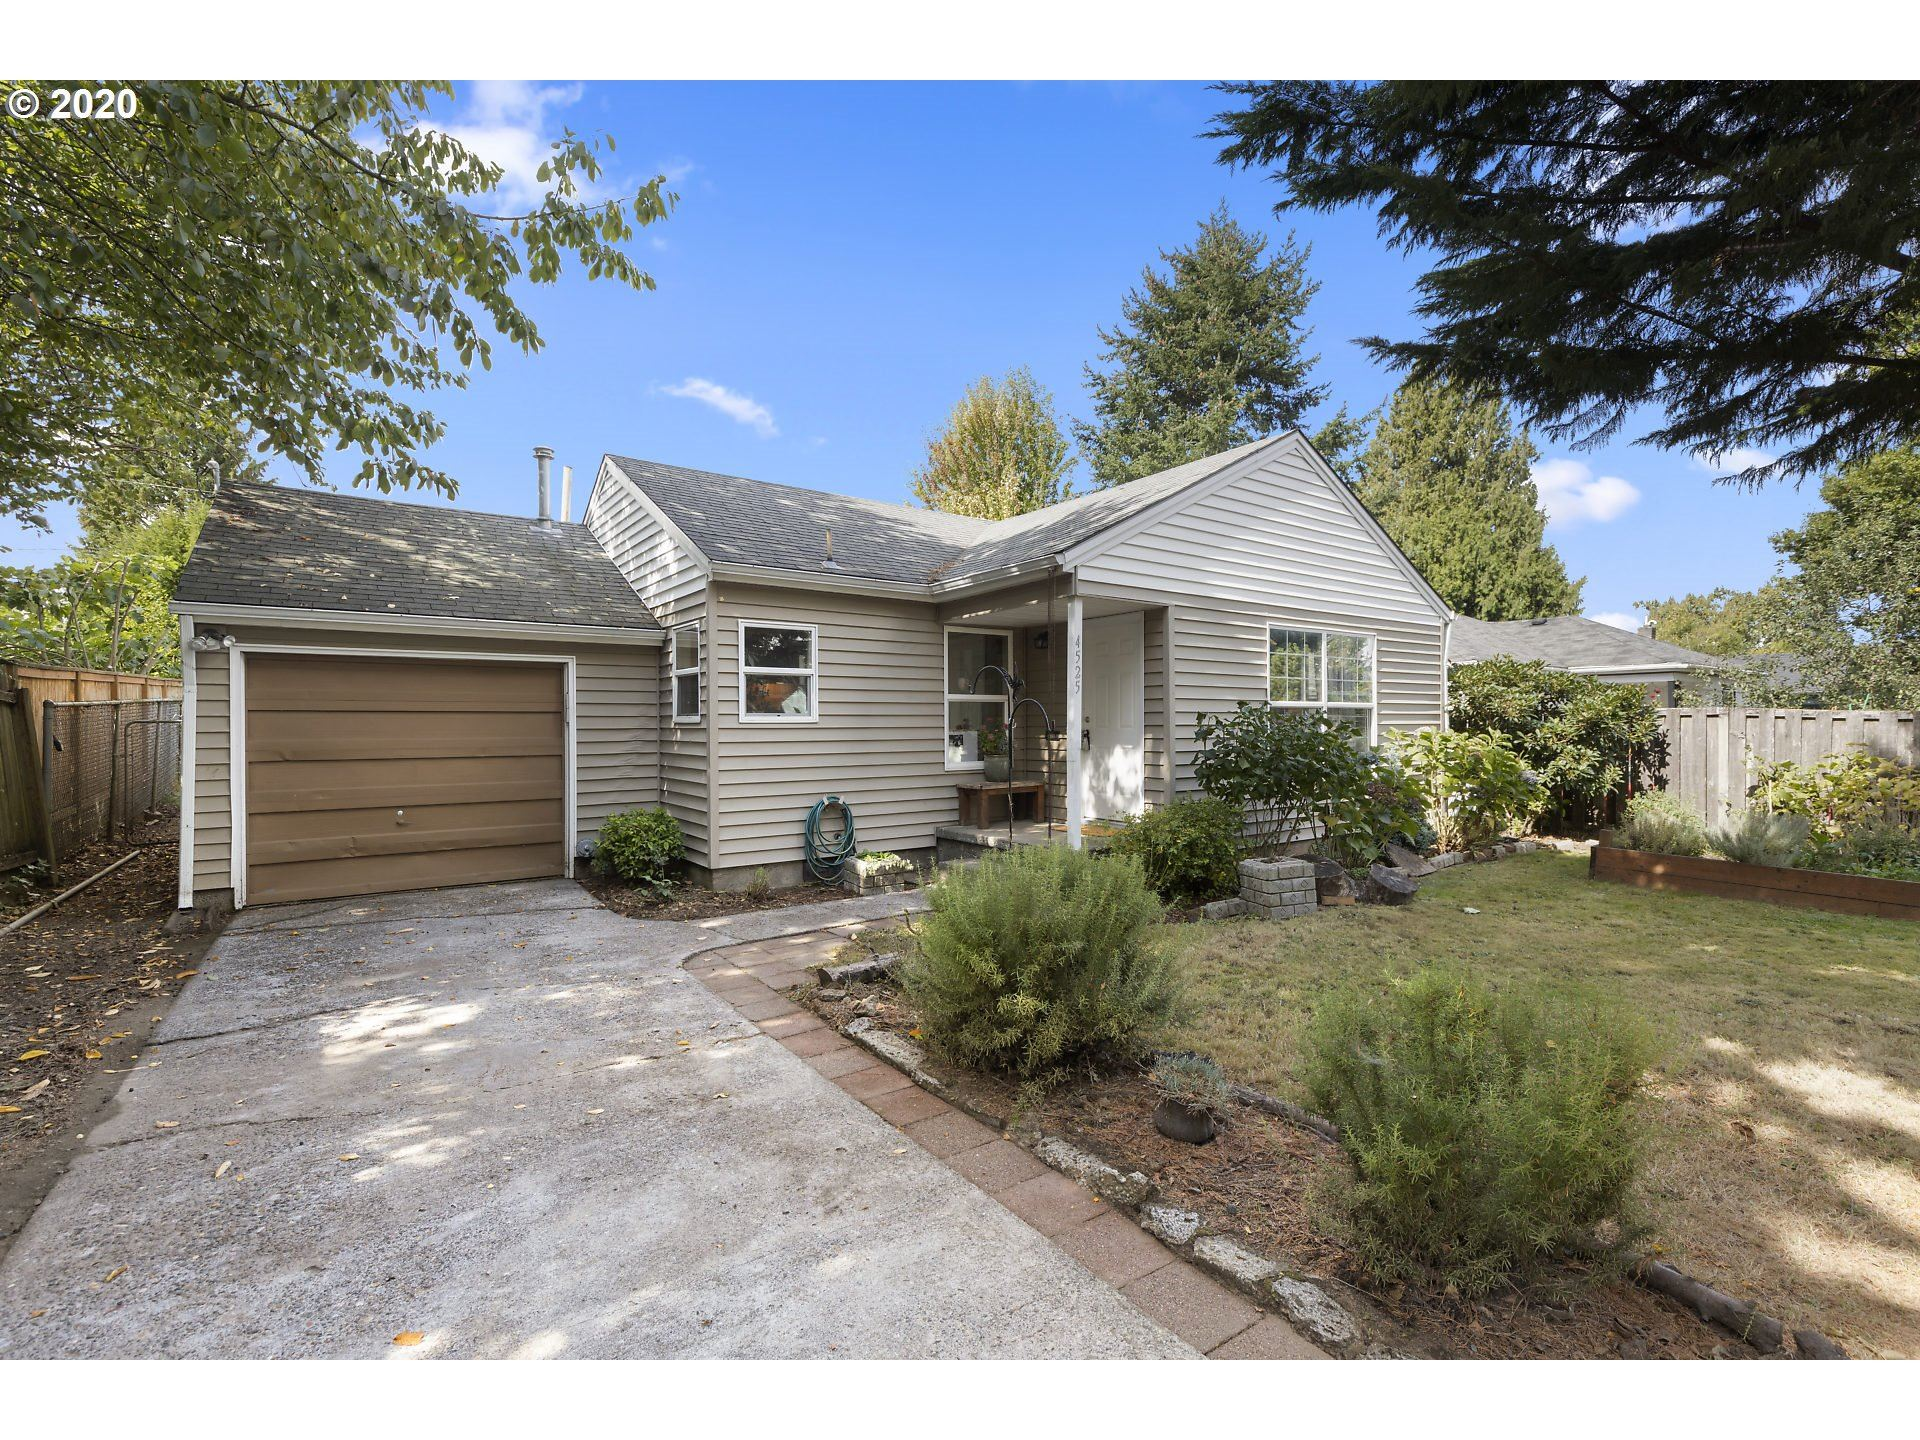 4525 NE 78TH AVE, Portland, OR 97218 - MLS#: 20240115